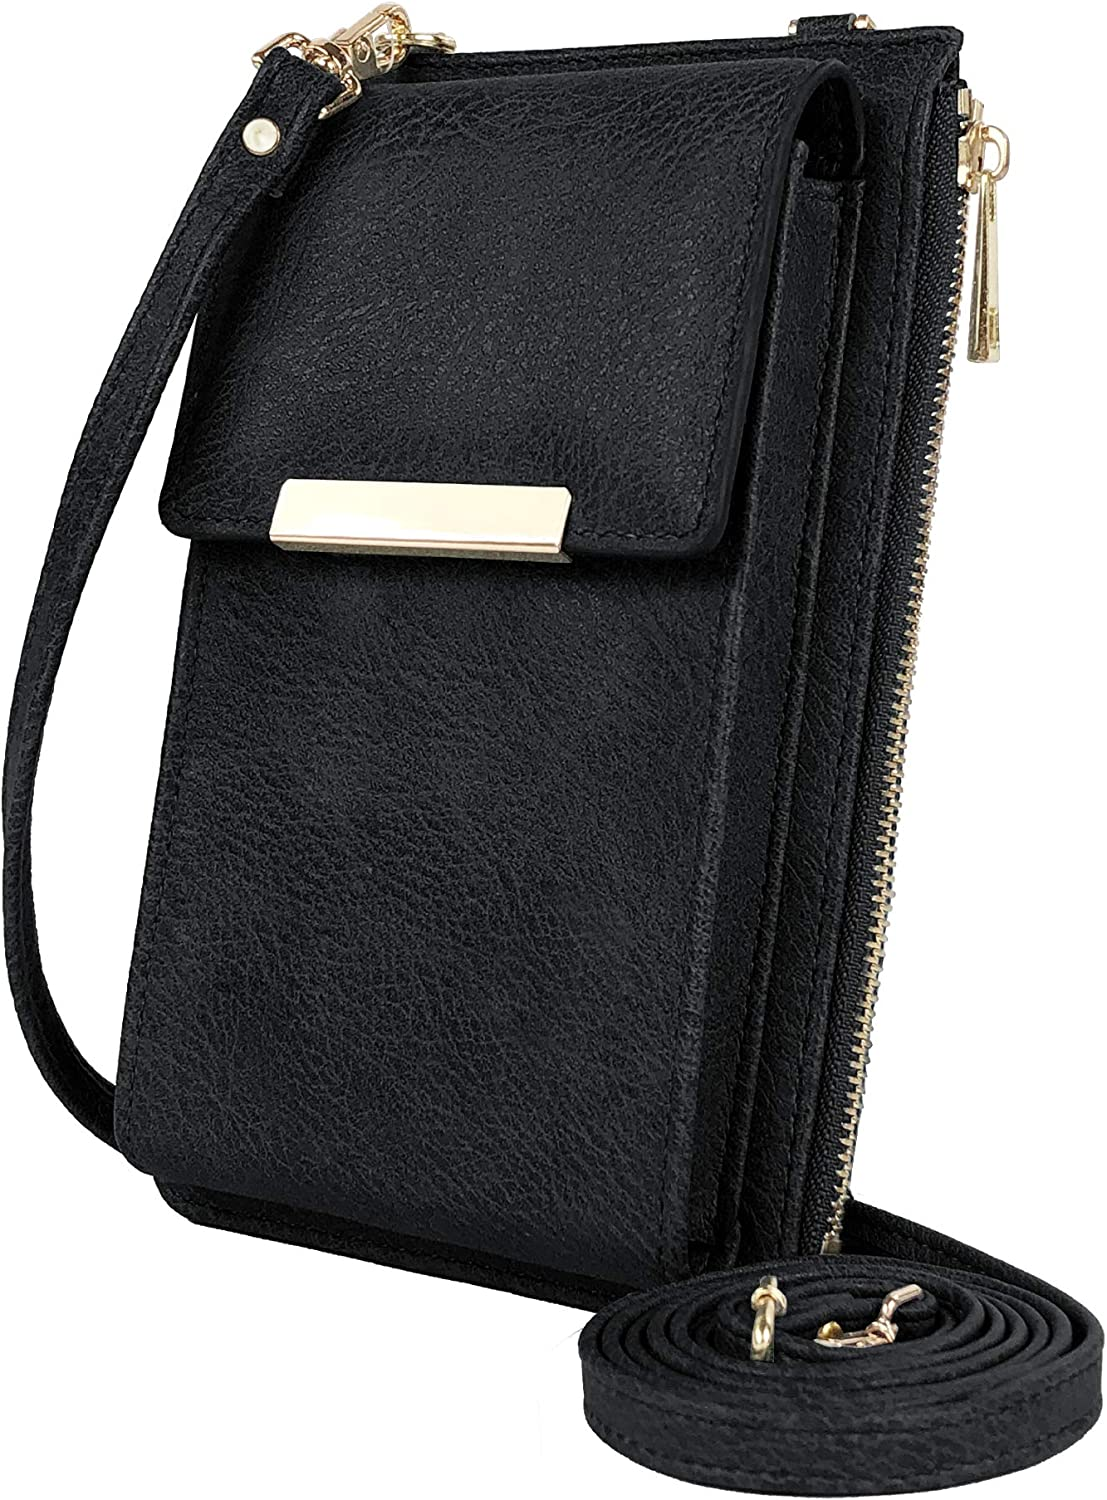 Deluxity Gianna Stylish Lightweight Small Plaid Crossbody Bag Cell Phone Purse Shoulder Bag Wallet with Card Holder for Women